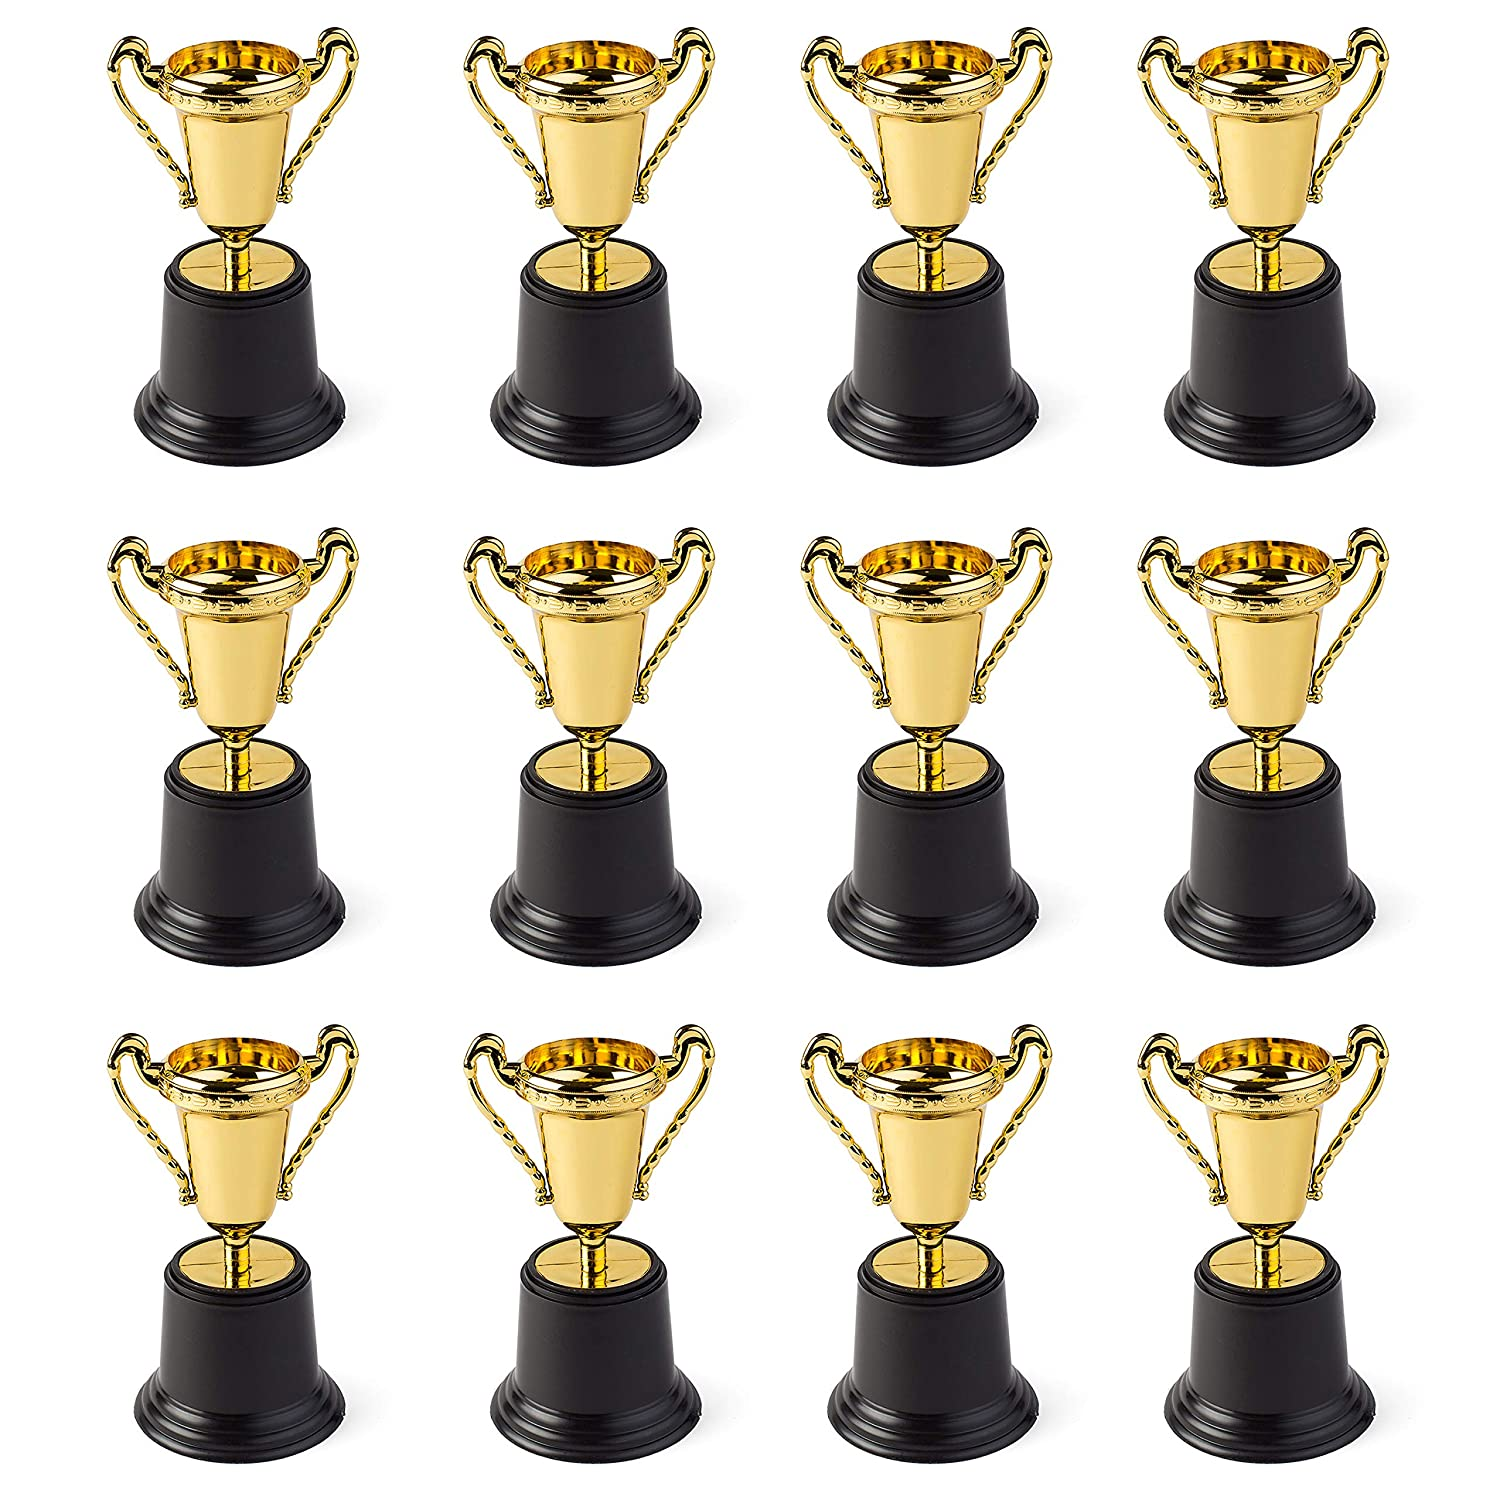 "Gold Award Trophy Cups 5"" First Place Winner Award Trophies by Neliblu Bulk Pack of 12 For Kids and Adults - Perfect To Reward Those Who Have Achieved"